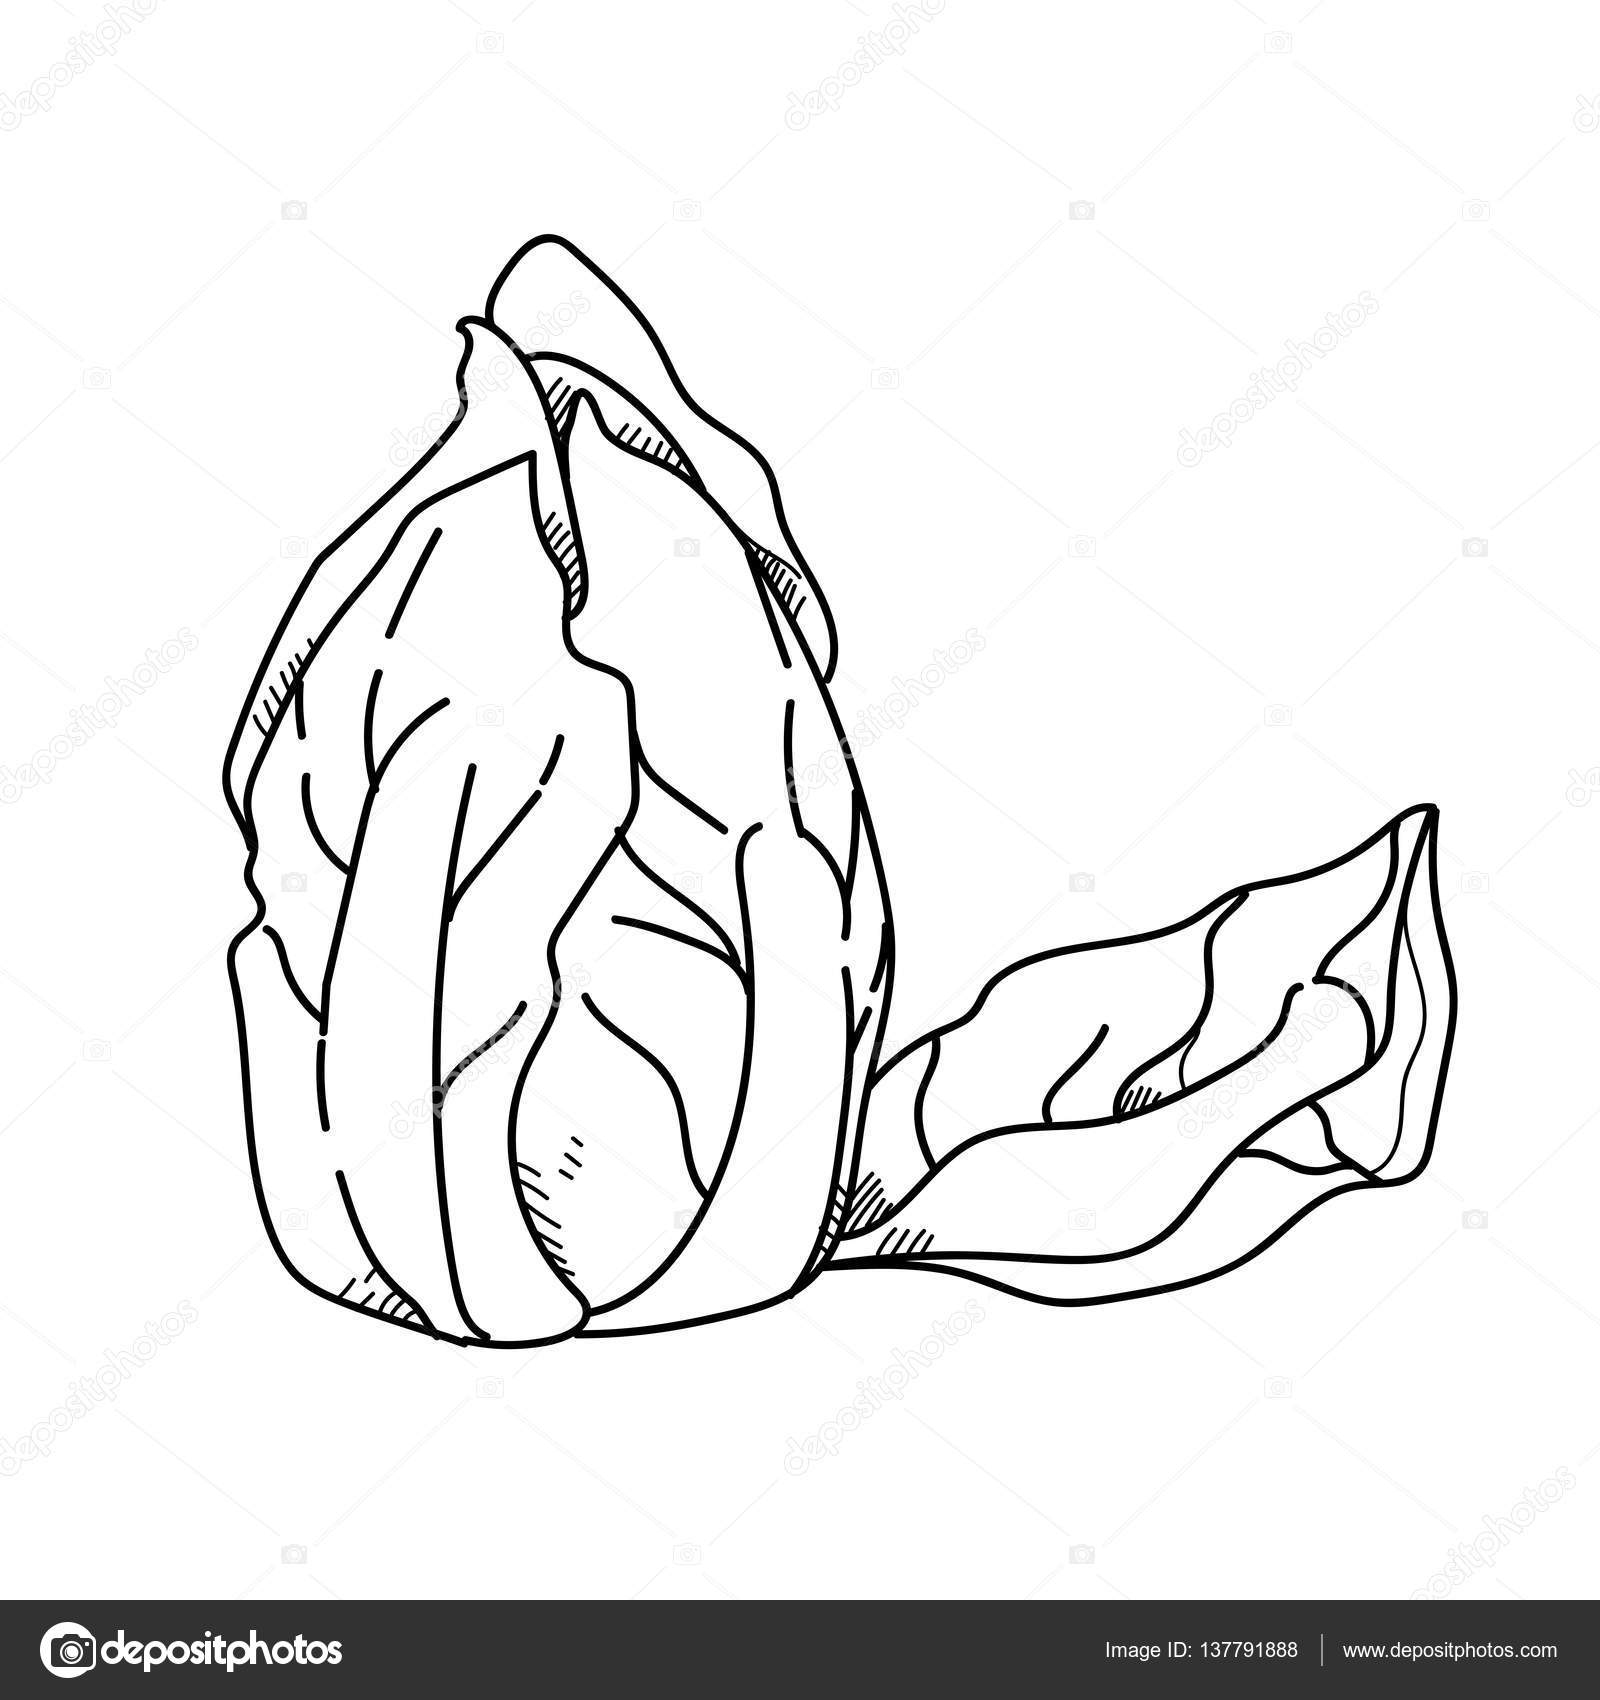 1600x1700 Freehand Drawing Illustration Vegetable Lettuce. Stock Photo